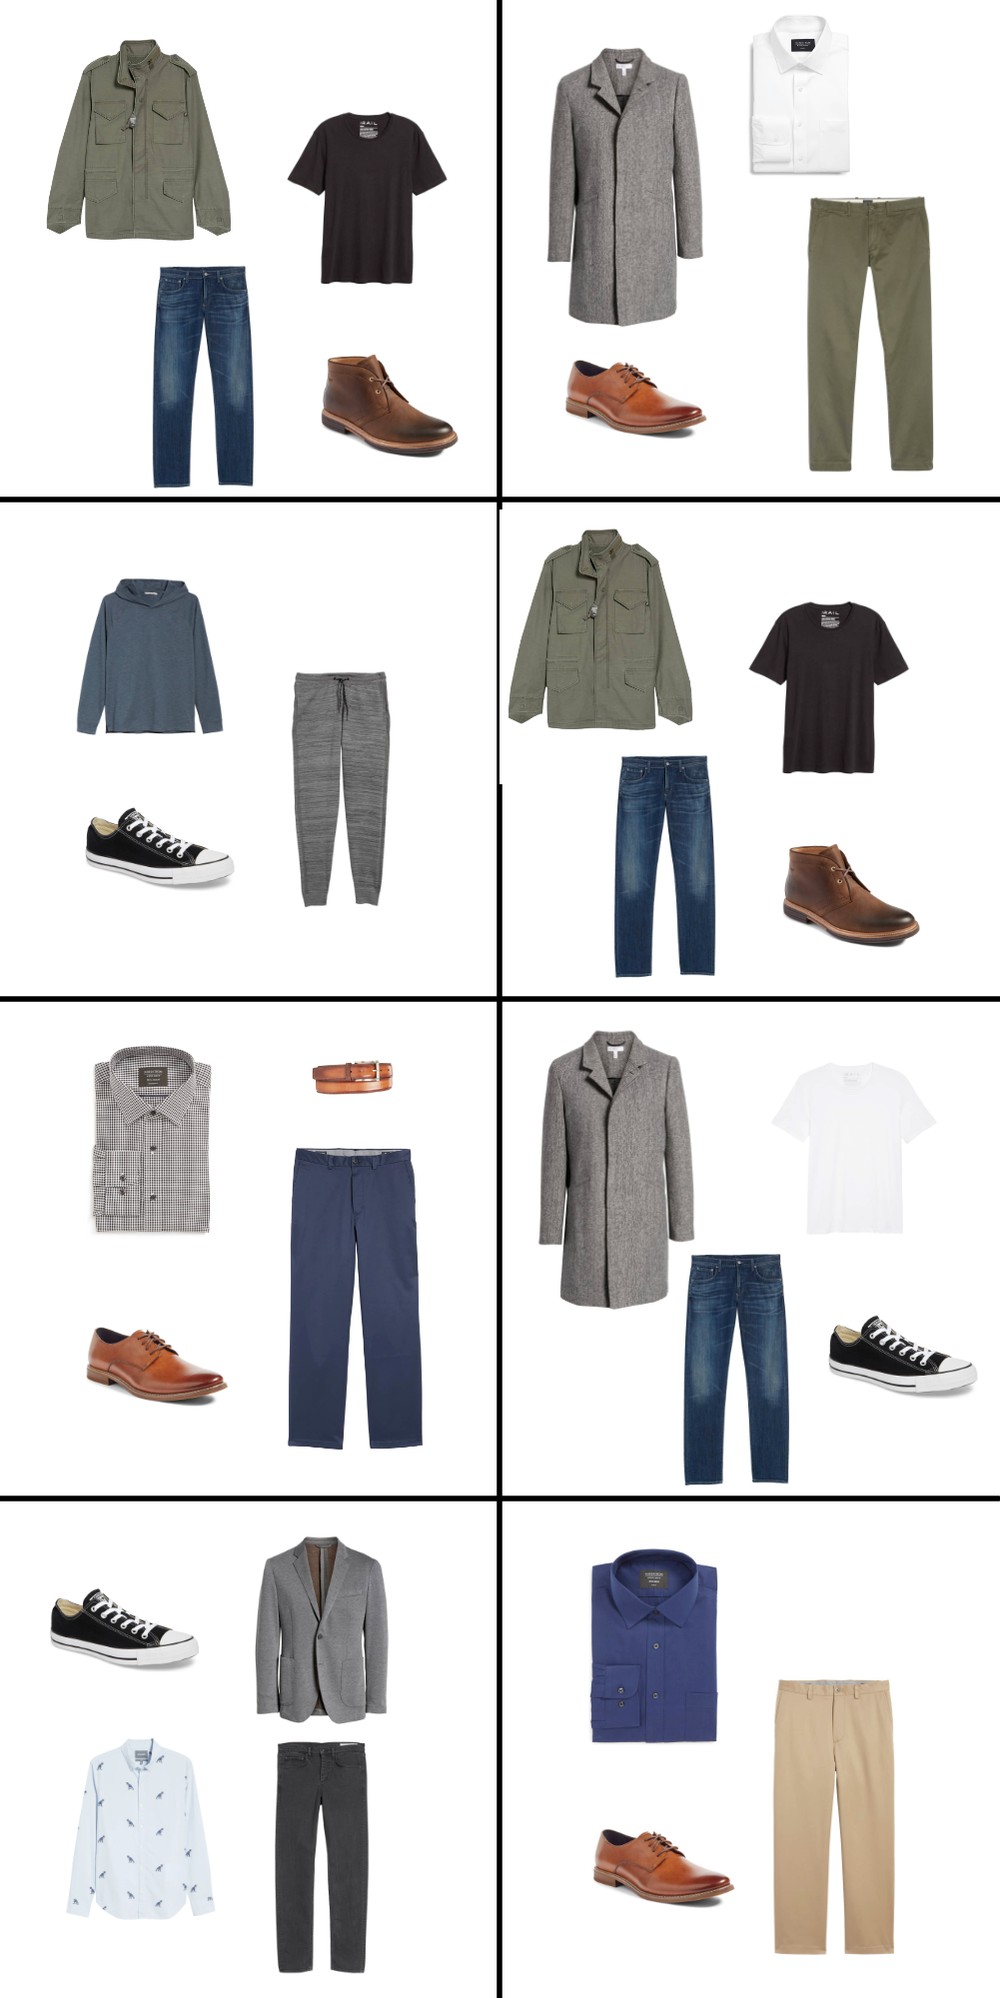 mens-capsule-wardrobe-outfits